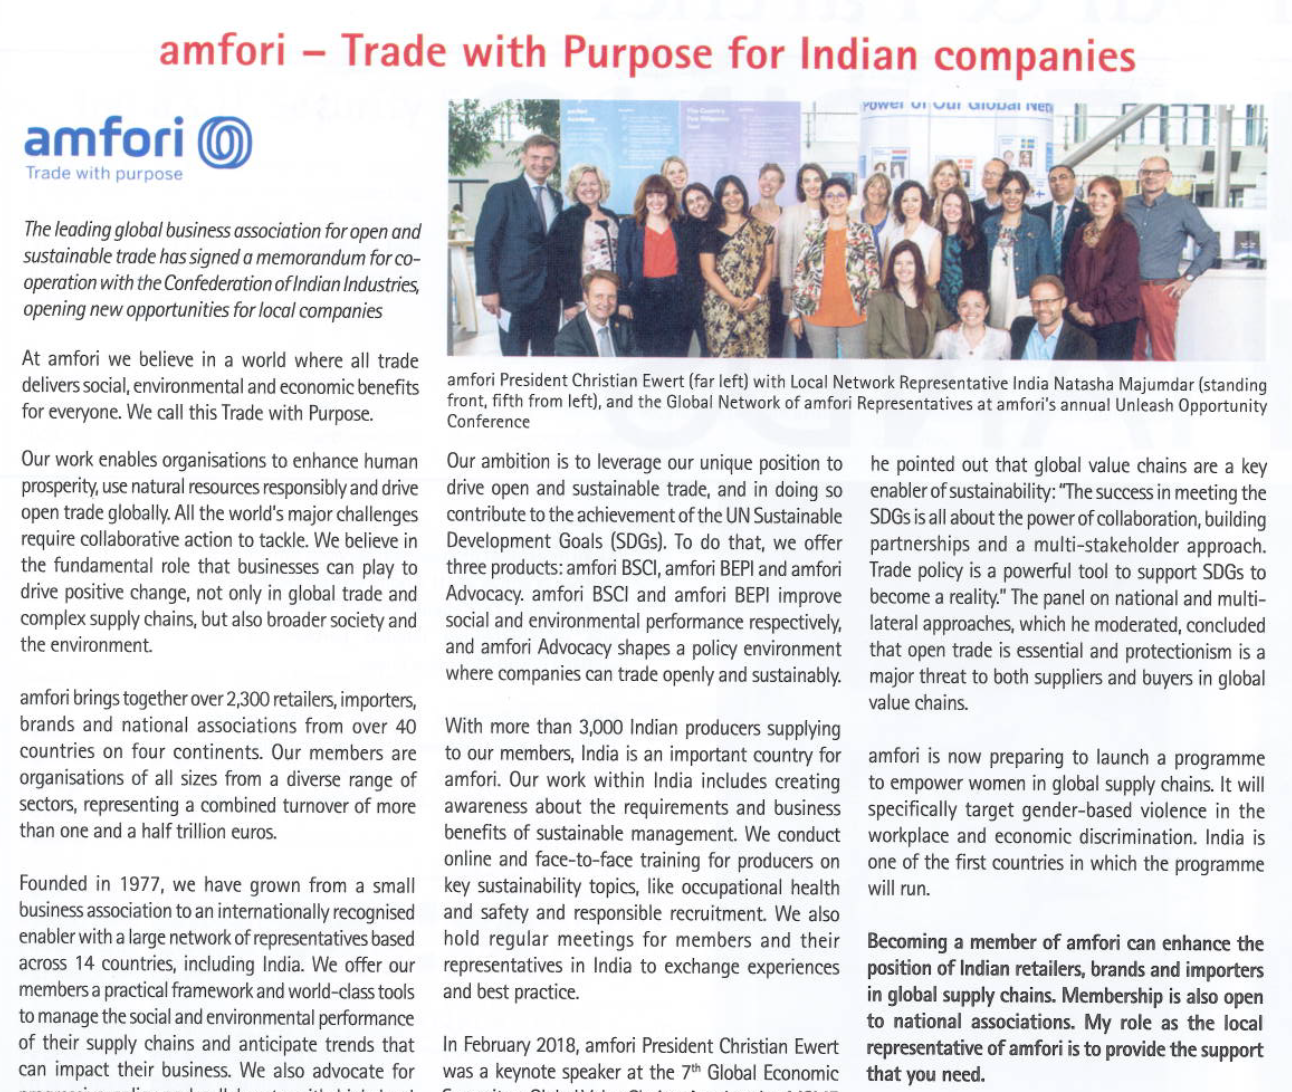 amfori means trade with purpose for companies across the world